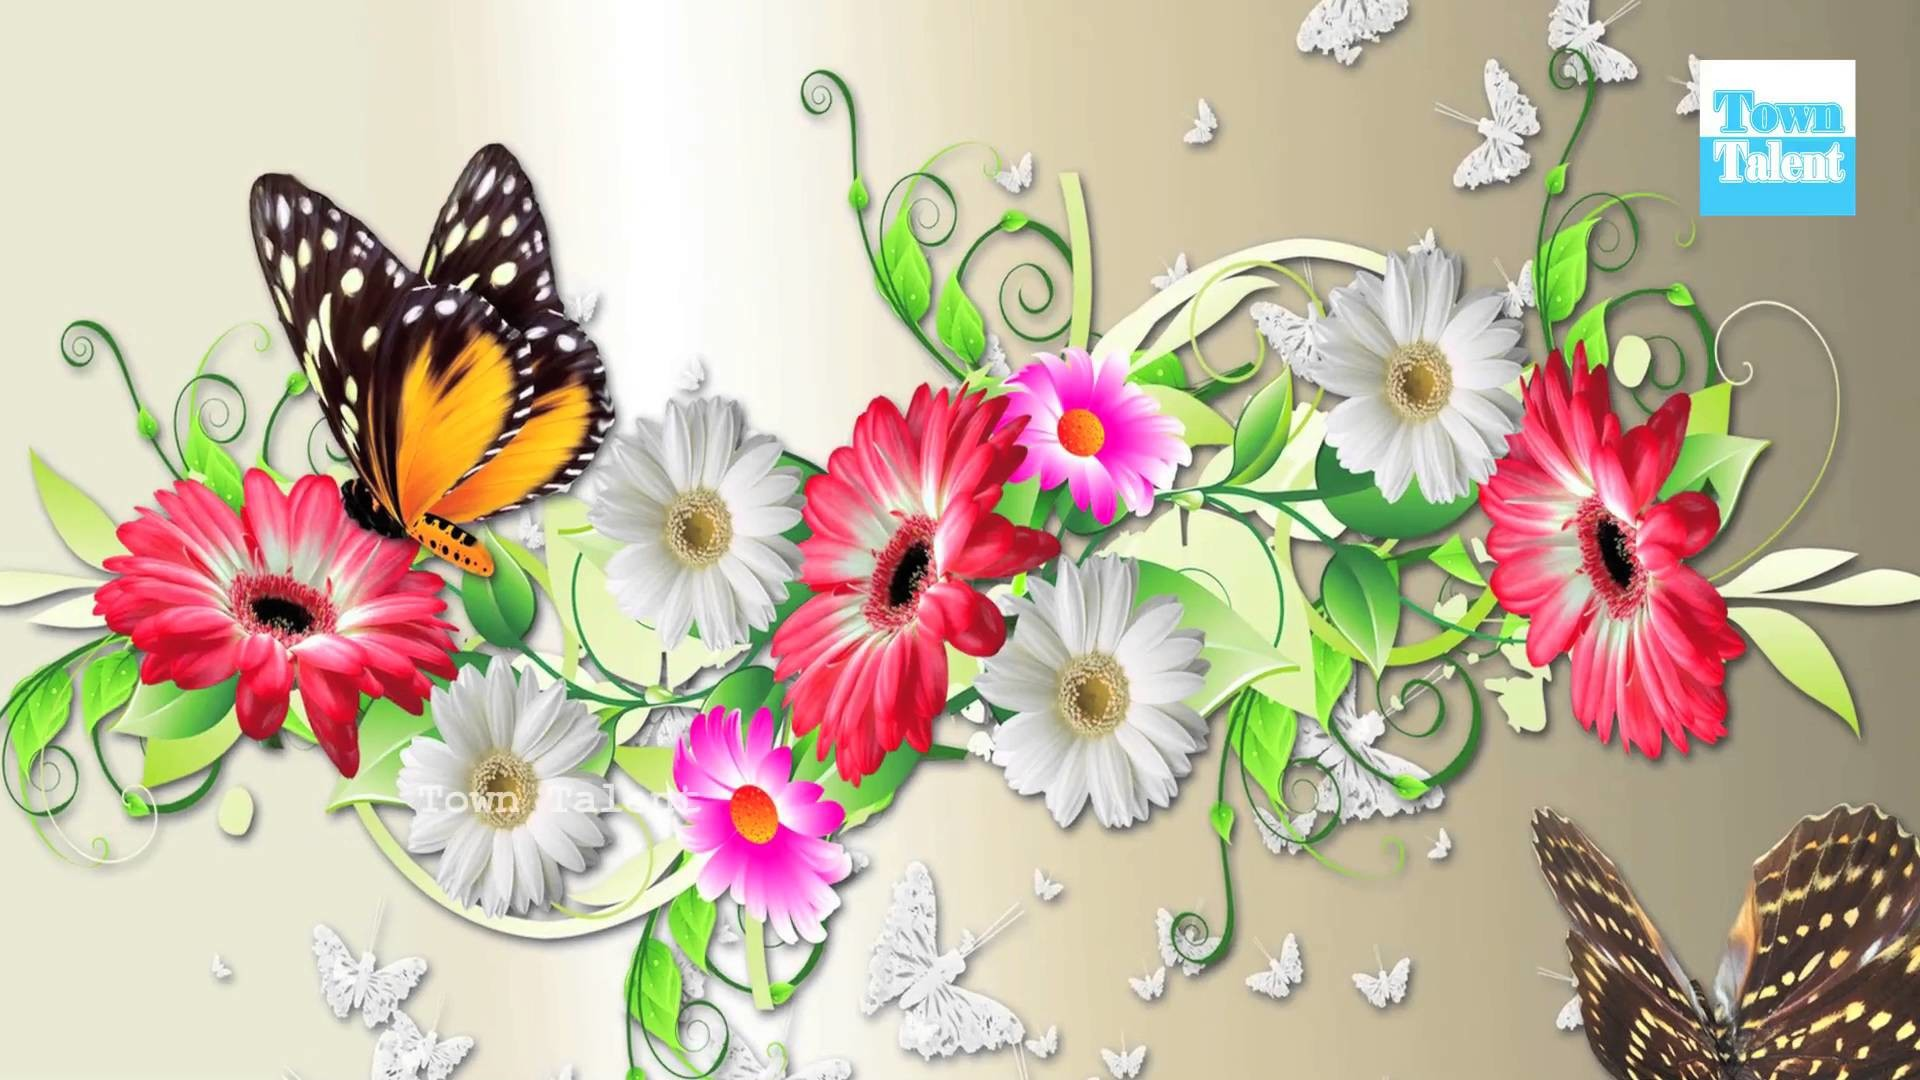 Nice Wallpaper Flower And Butterfly , HD Wallpaper & Backgrounds